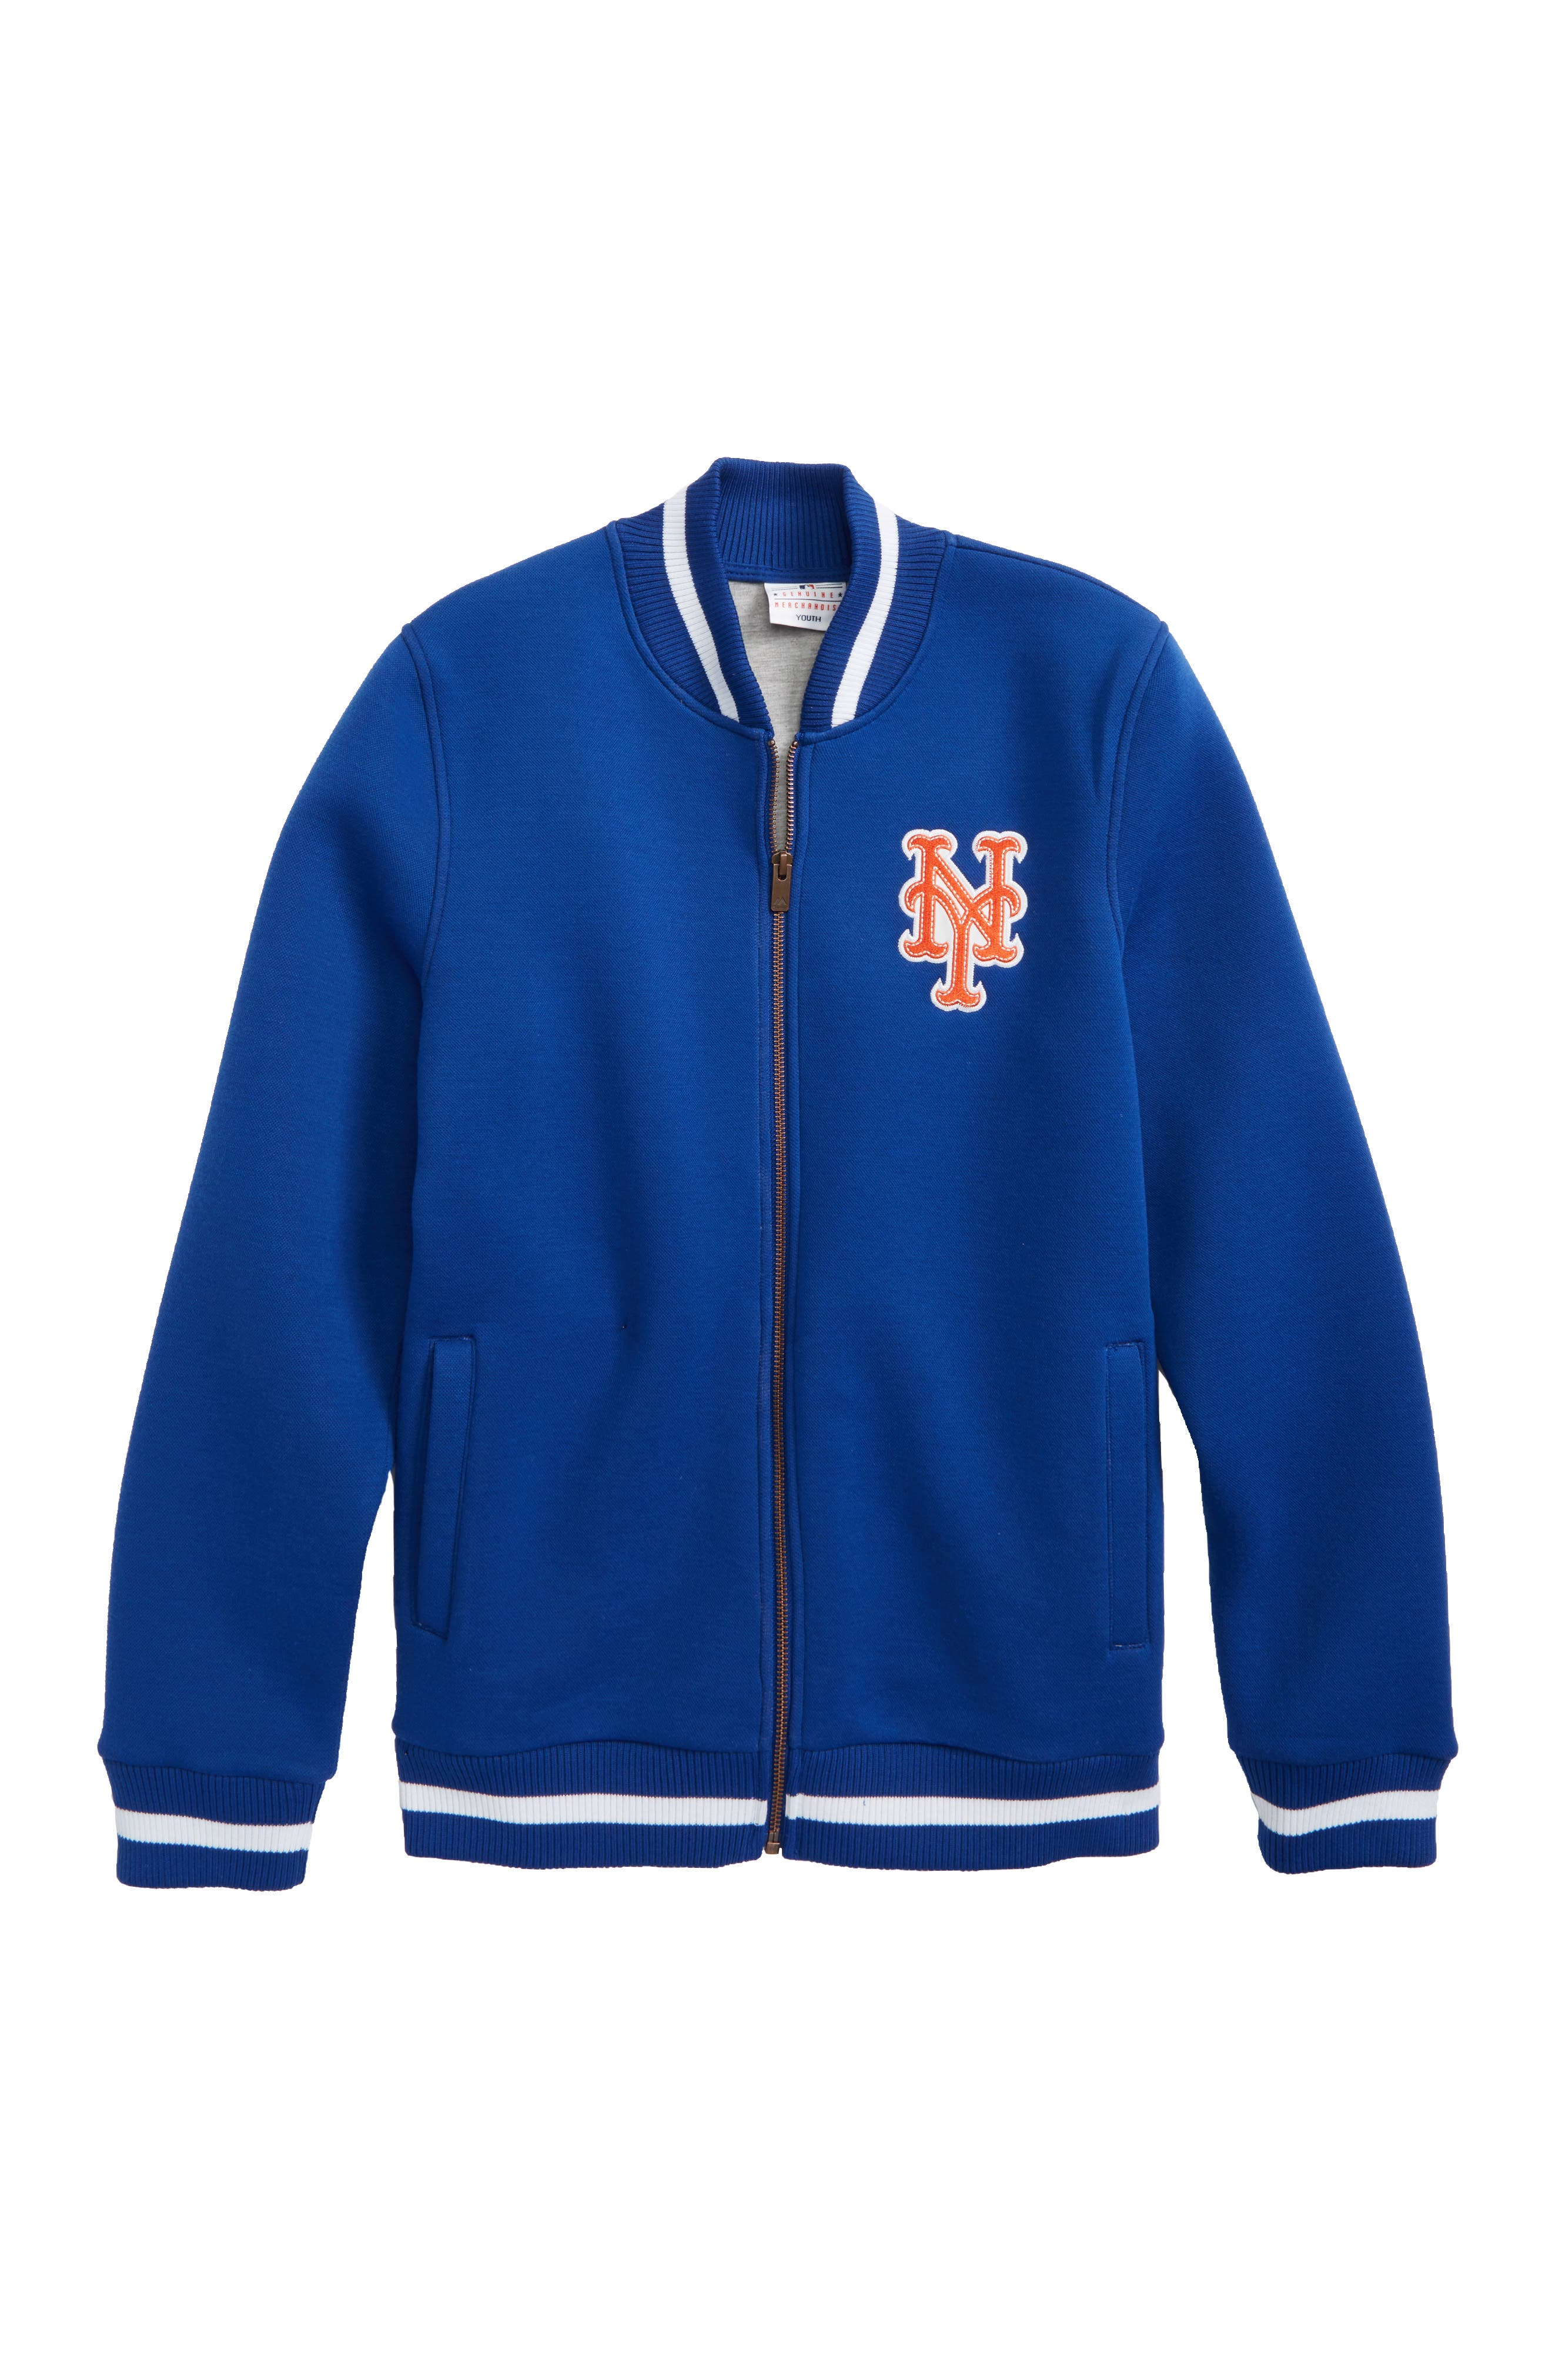 Classical New York Mets Knit Varsity Jacket,                         Main,                         color, 400